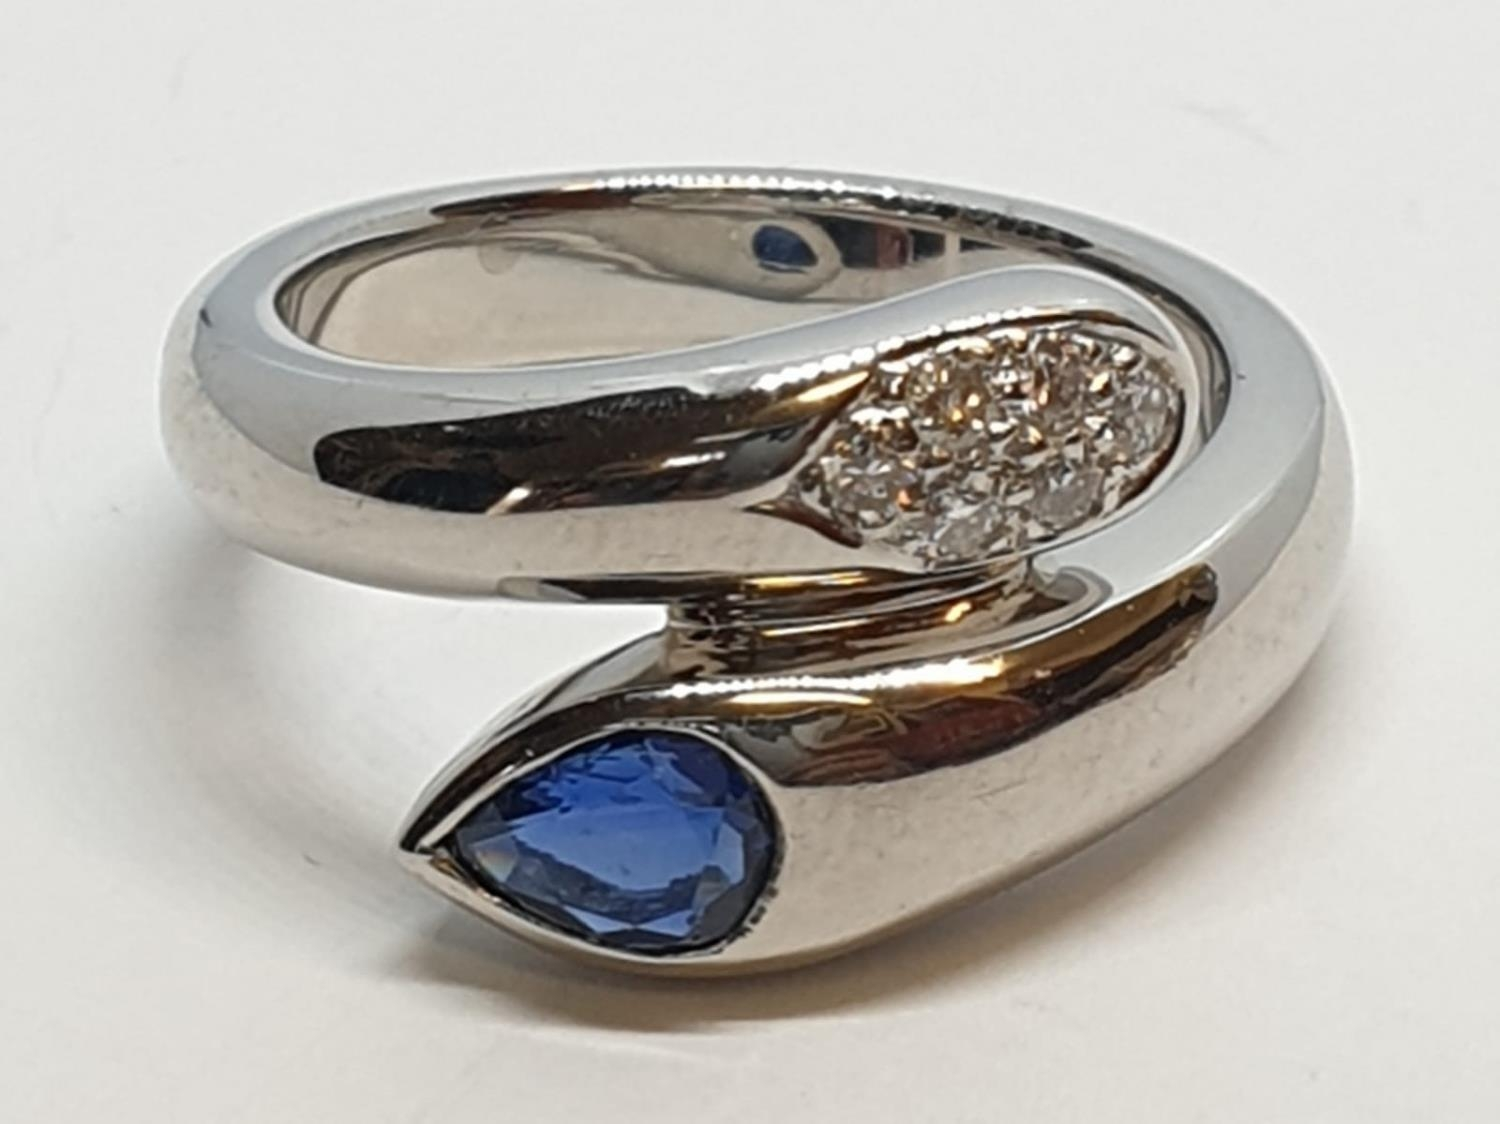 Platinum cross over ring with 0.60ct Thai sapphire and 0.30ct encrusted diamonds, weight 13.7g and